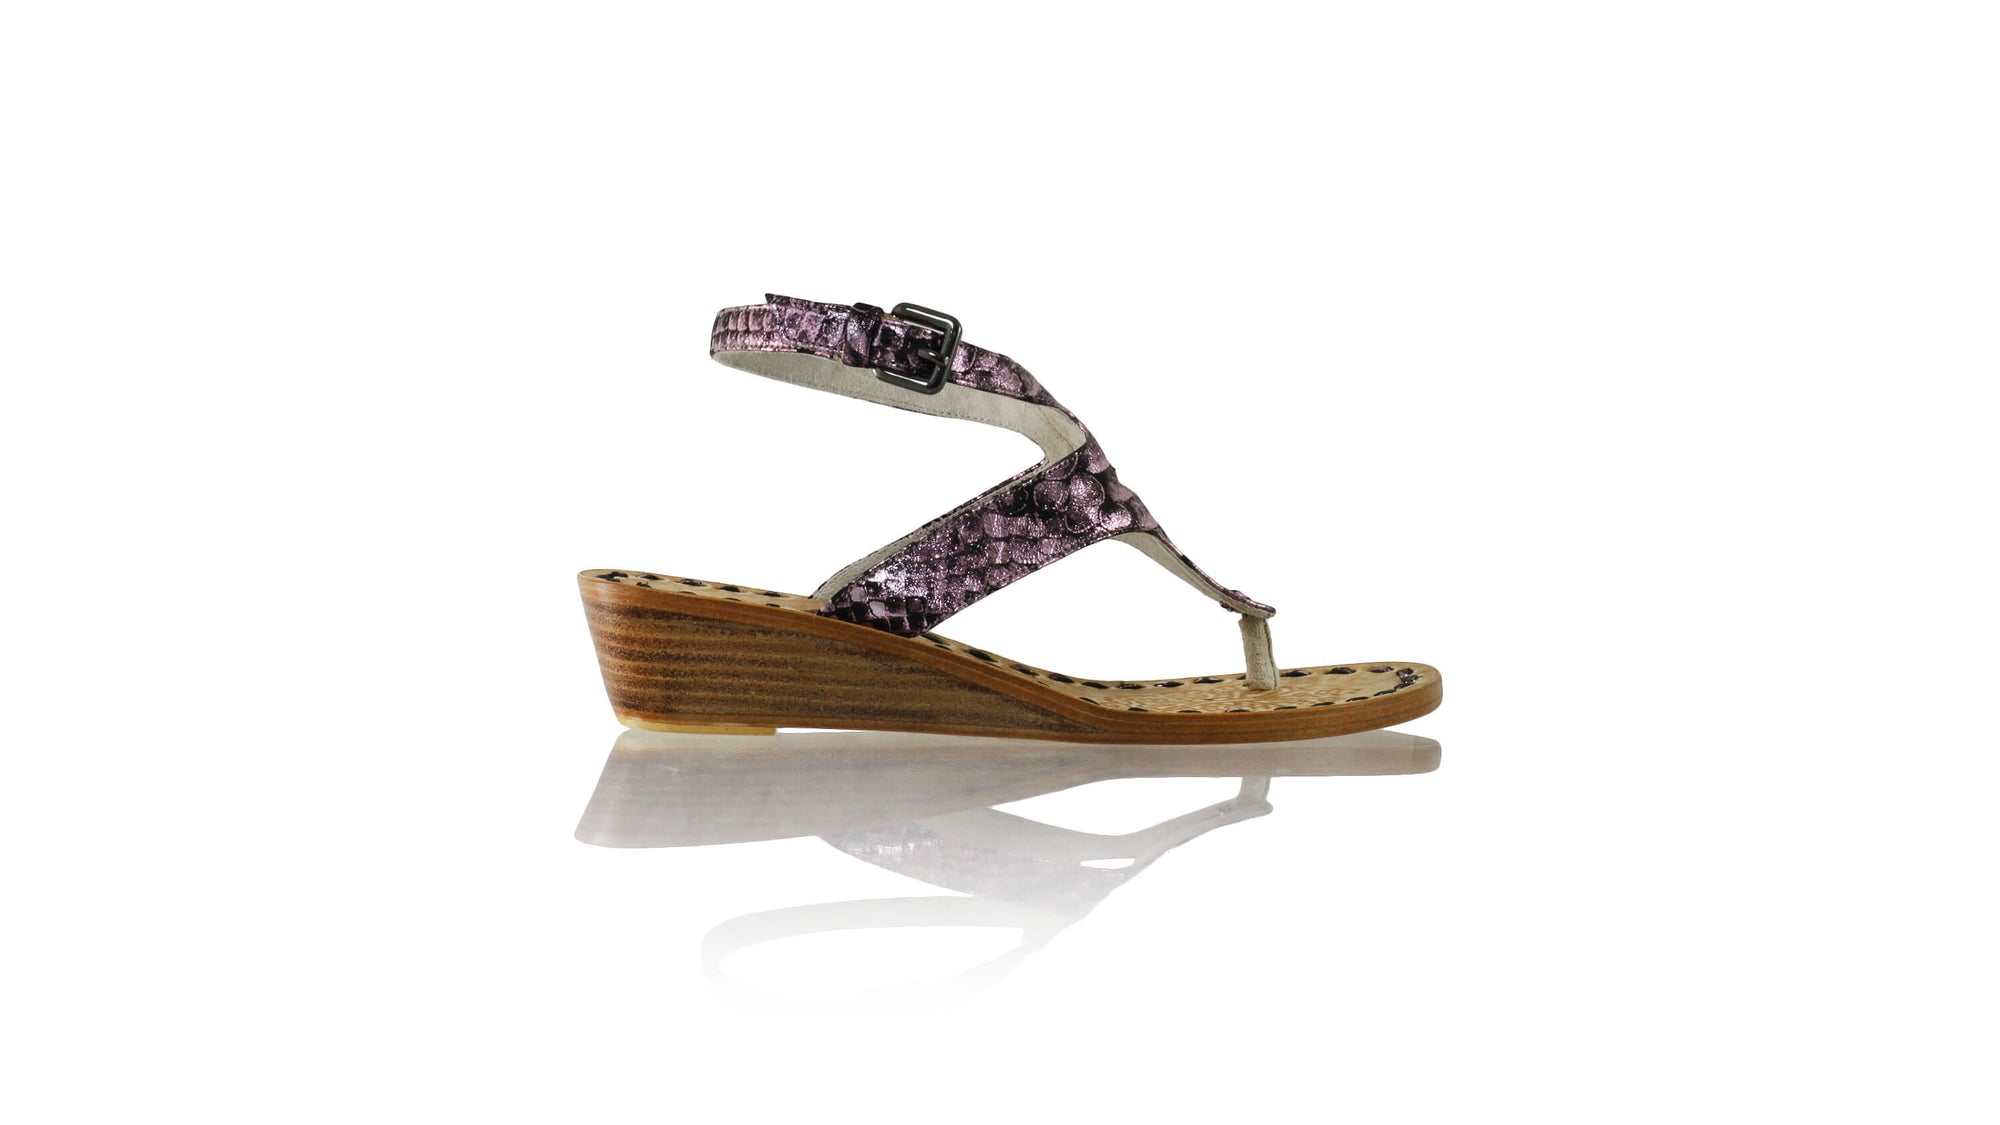 Leather-shoes-Agra 35mm Wedge - Purple Python Print-sandals wedges-NILUH DJELANTIK-NILUH DJELANTIK